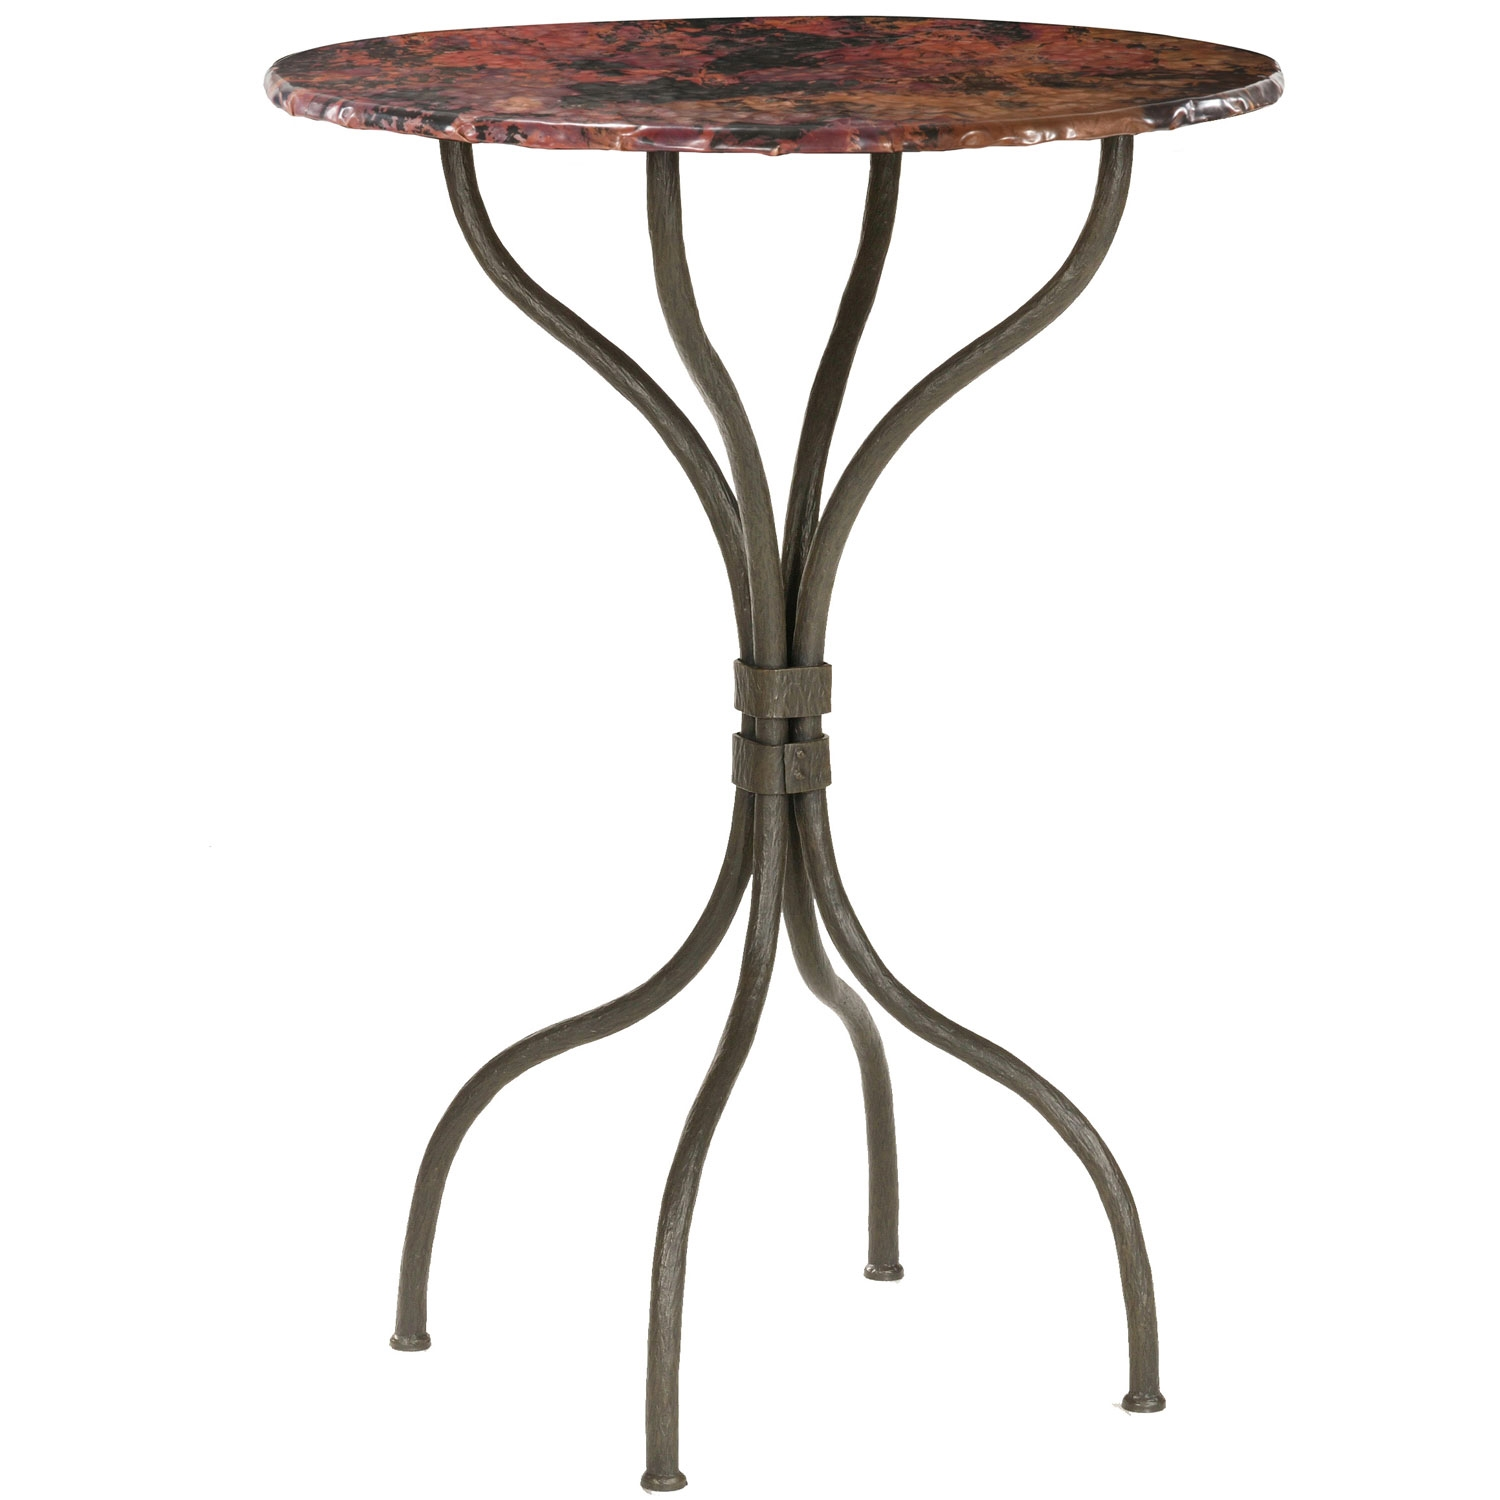 Strange Wrought Iron Cedarvale Counter Height Table 30 Round Top Download Free Architecture Designs Embacsunscenecom